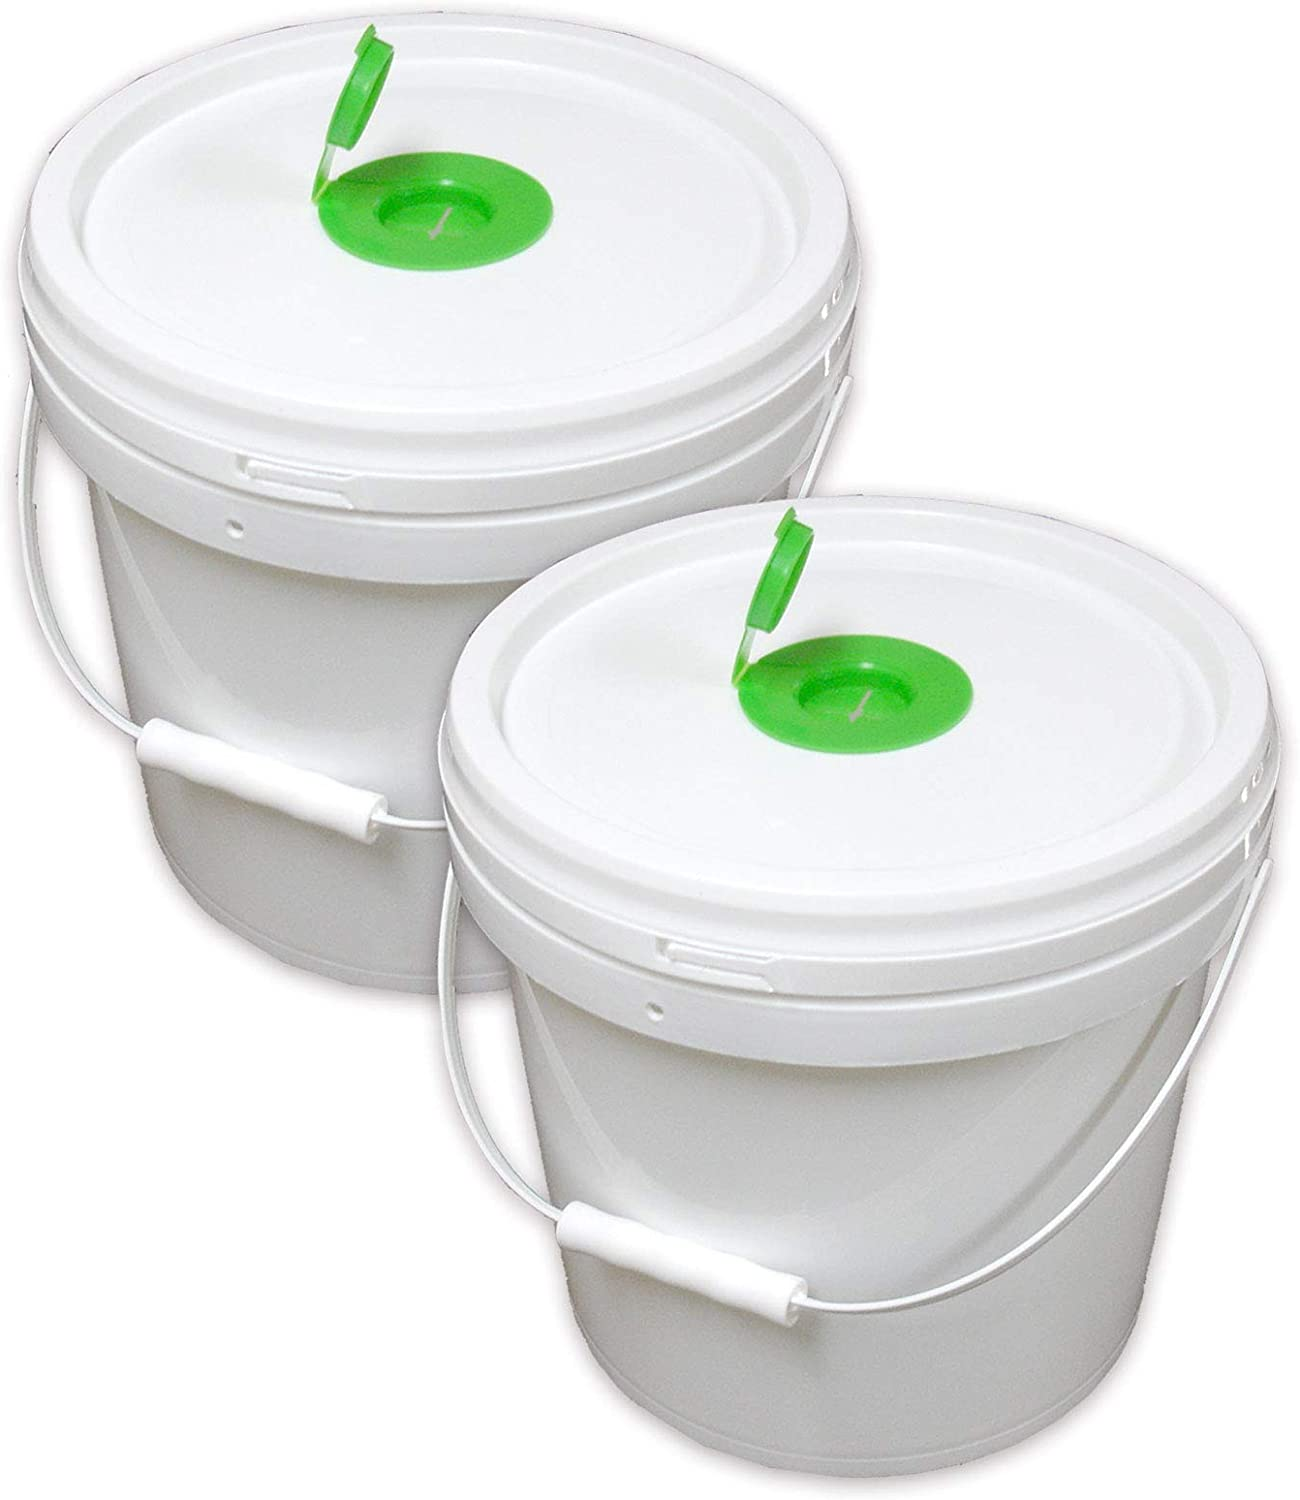 "Texas Ragtime 2 Empty Plastic Buckets Wet Wipe Roll Dispenser with Pop Up Top Reusable Economical for Home and Commercial Use 10"" Height x 10"" Diameter Use with Any Wet Wipe Roll 8 Inches Diameter"